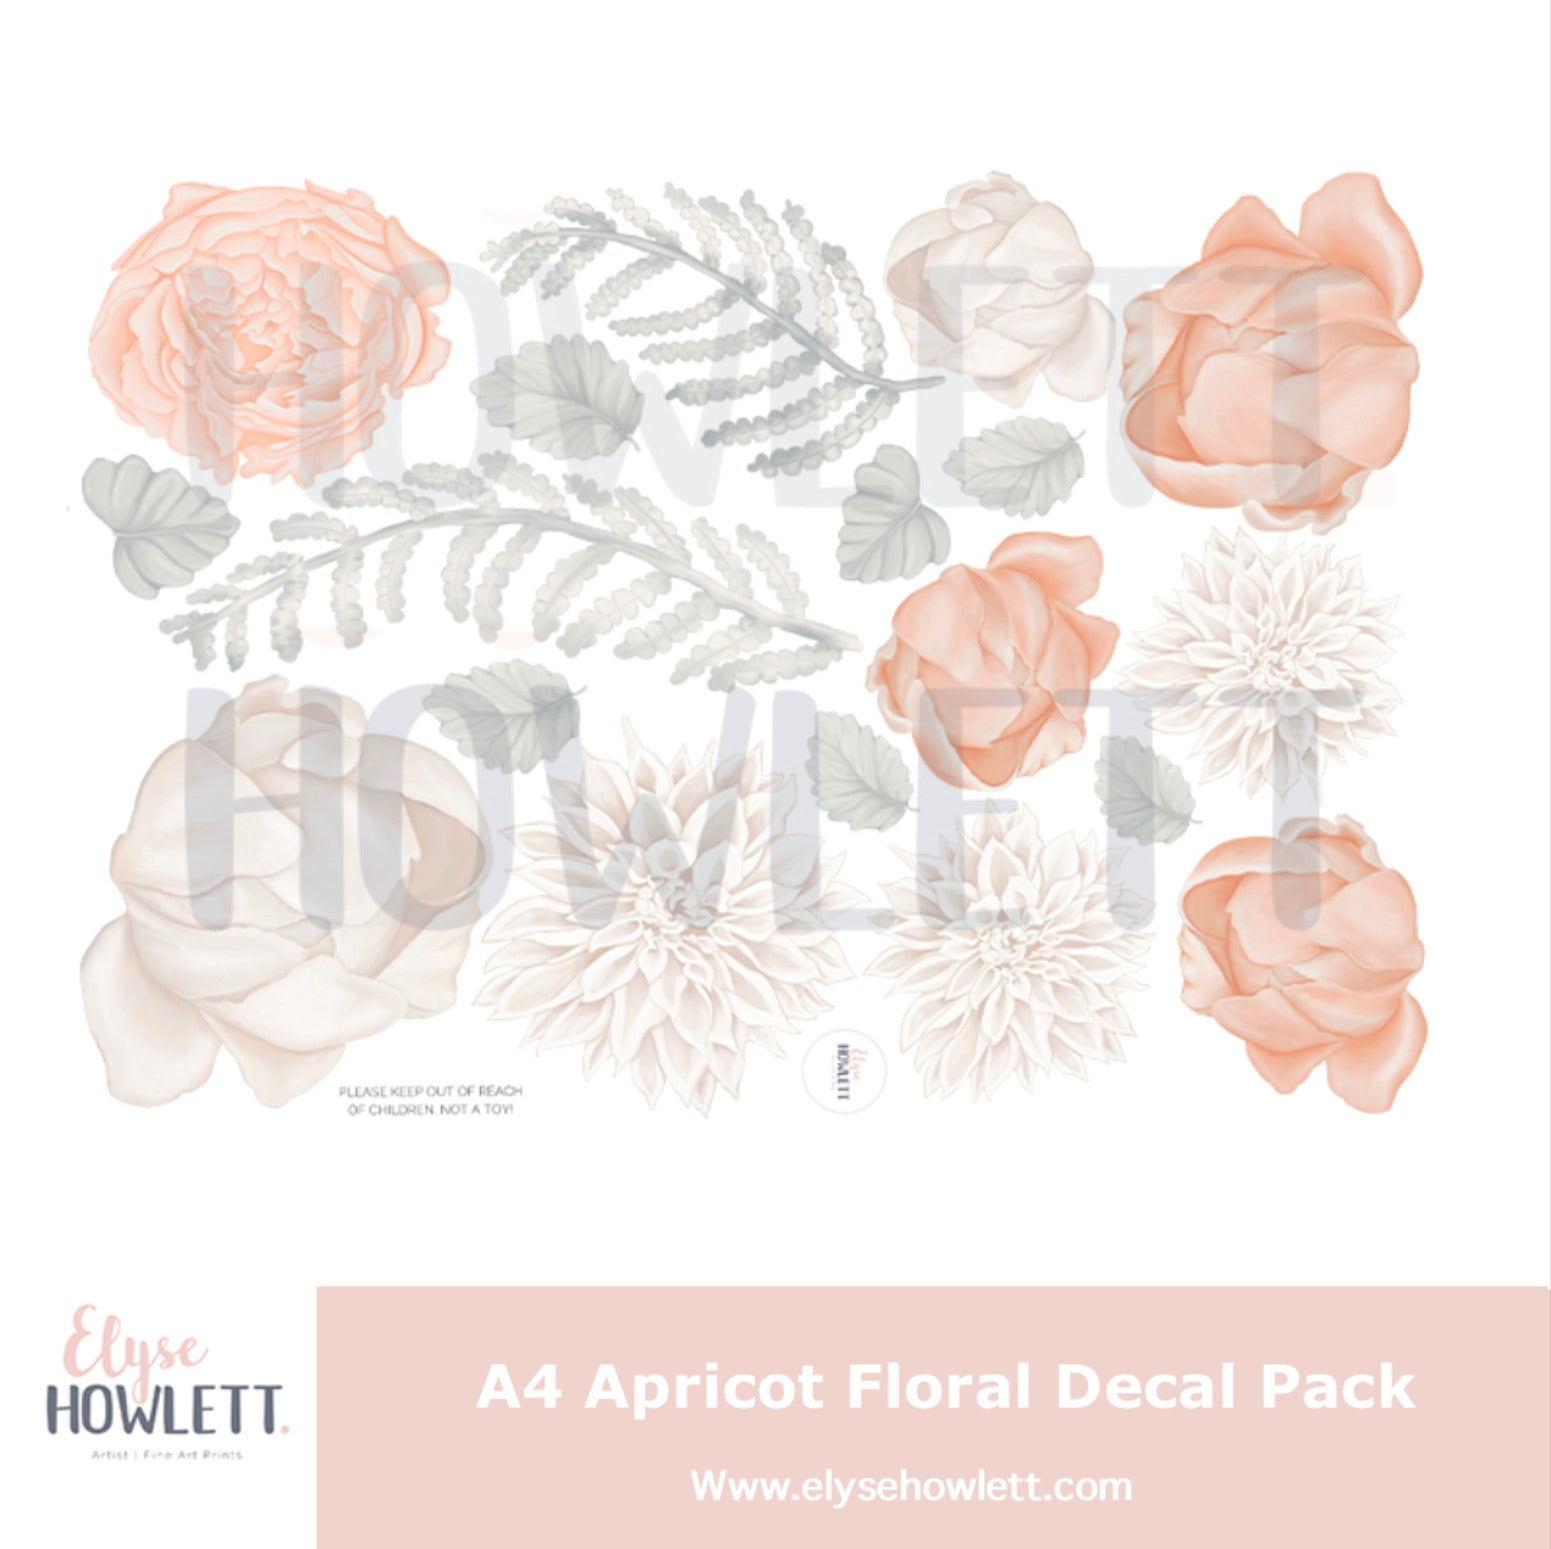 A4 Apricot flower decal pack